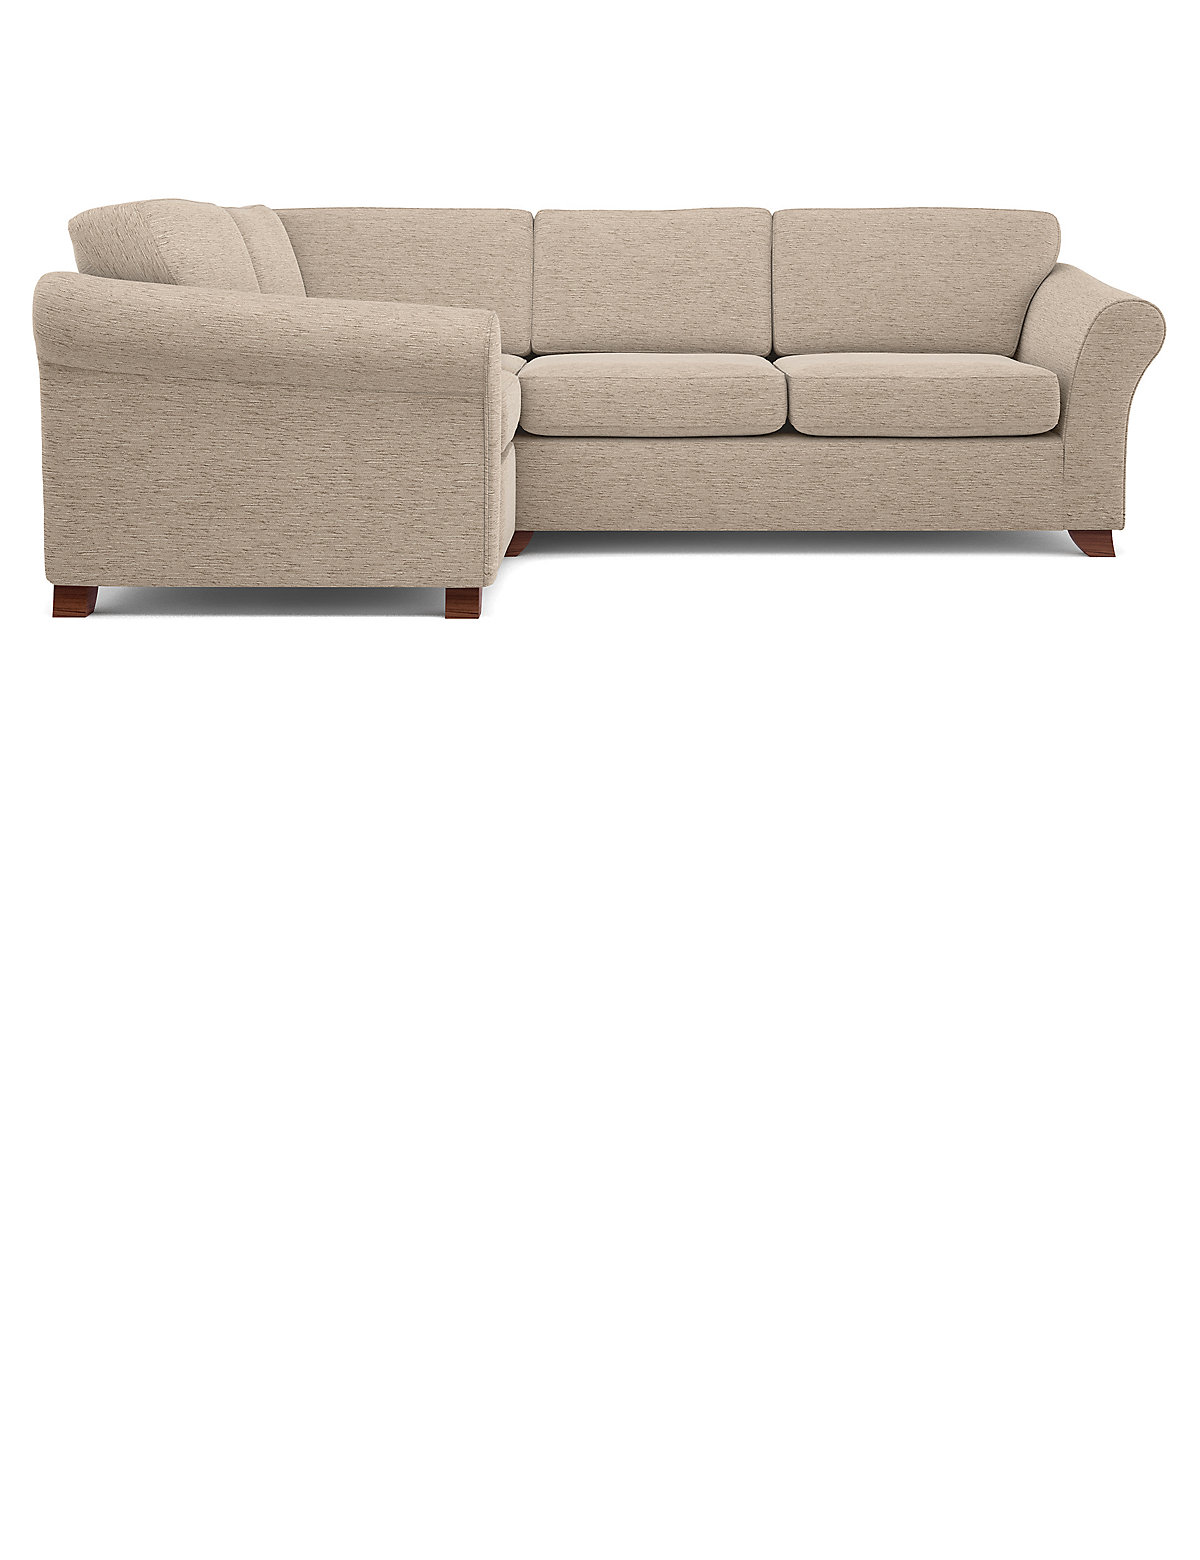 Image of Abbey Firm Small Corner Sofa (Left-Hand)